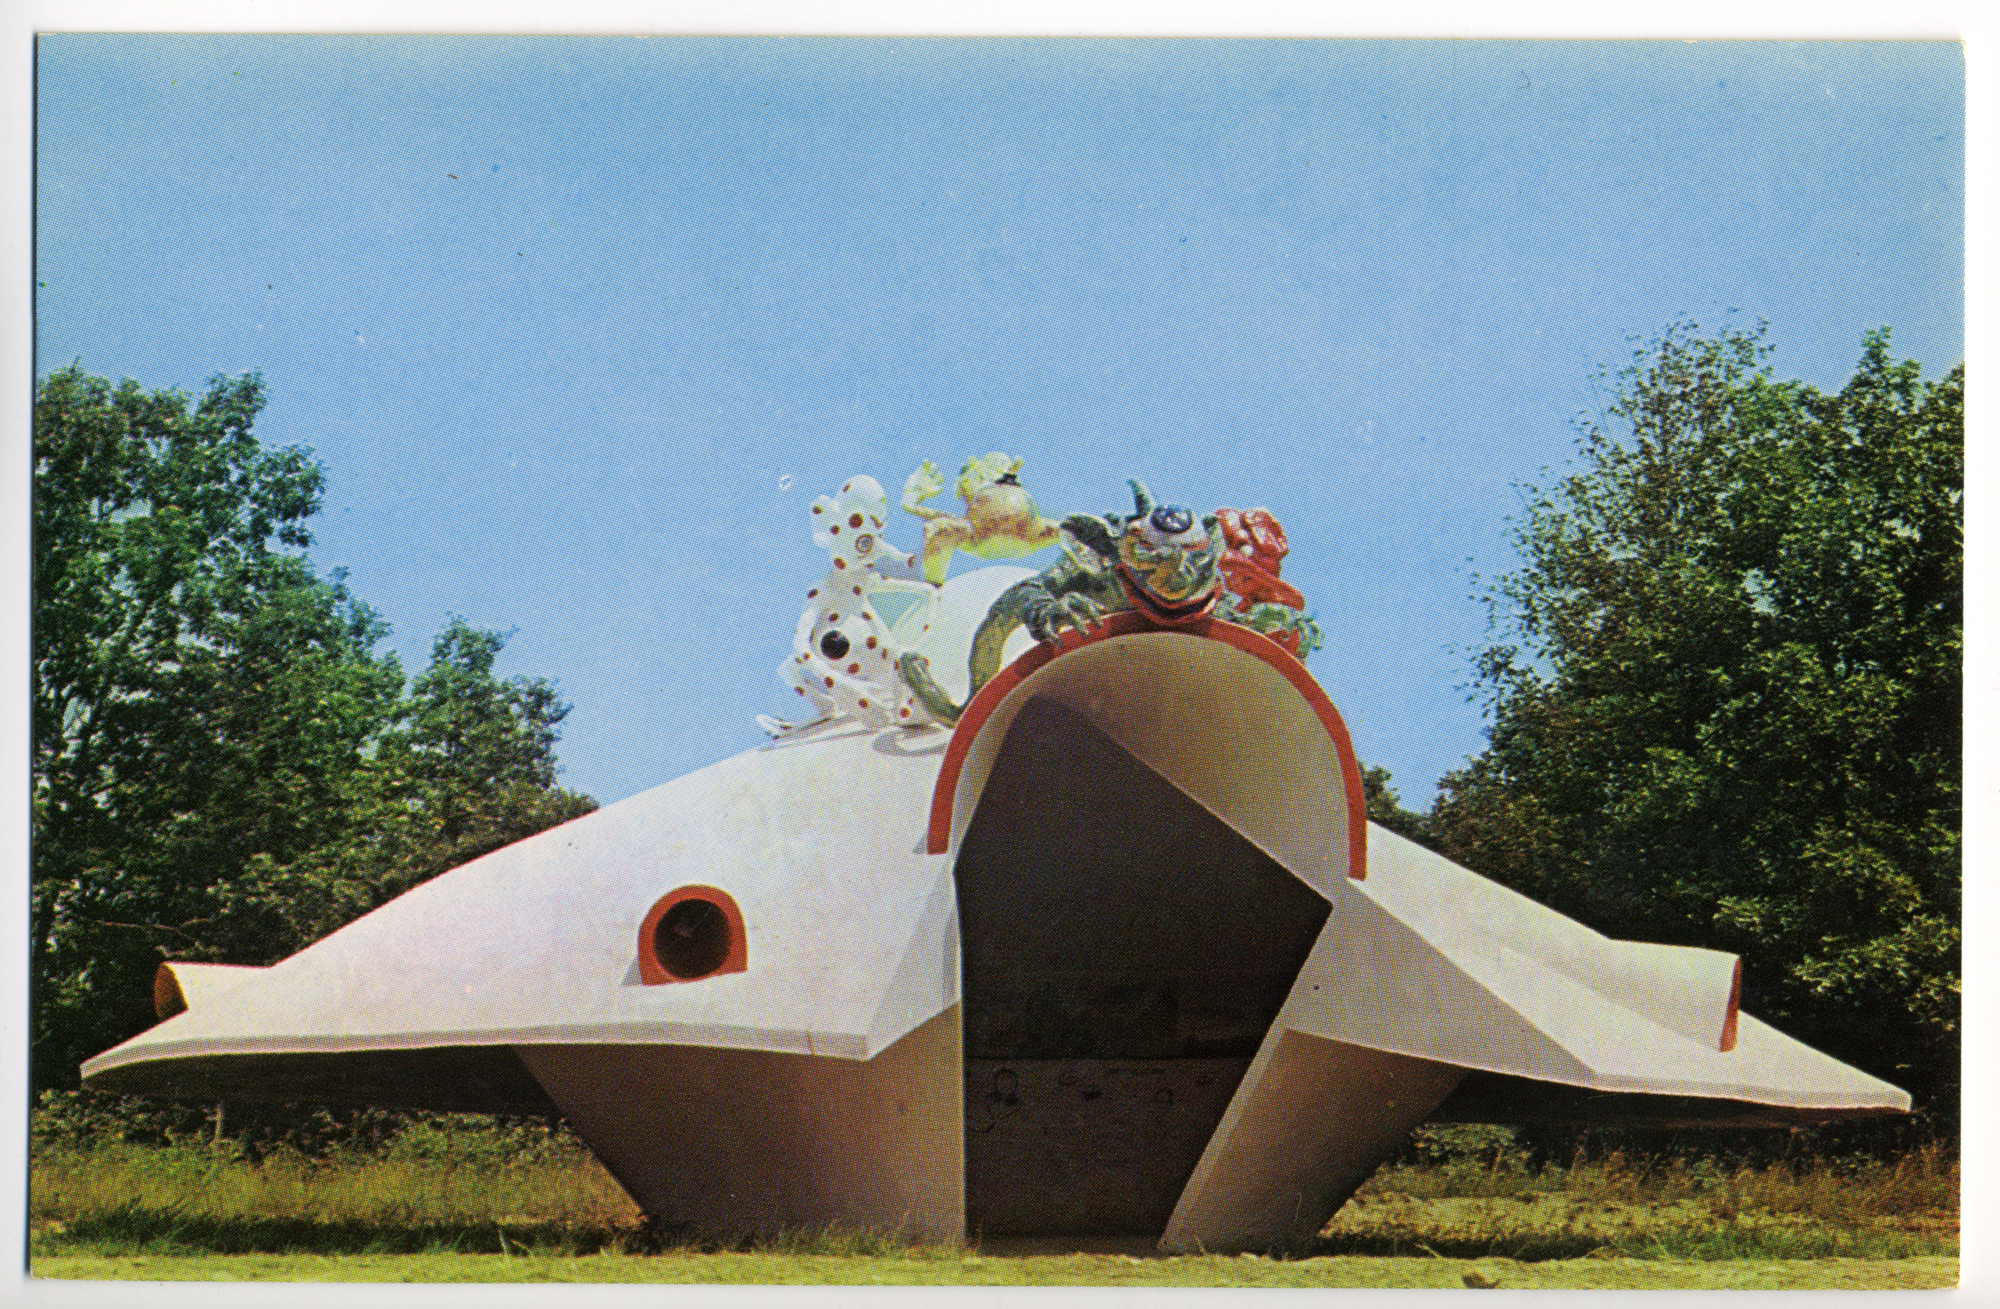 Roadside Flying Saucer with Aliens (Fairytown, NY Postcard circa 1970)